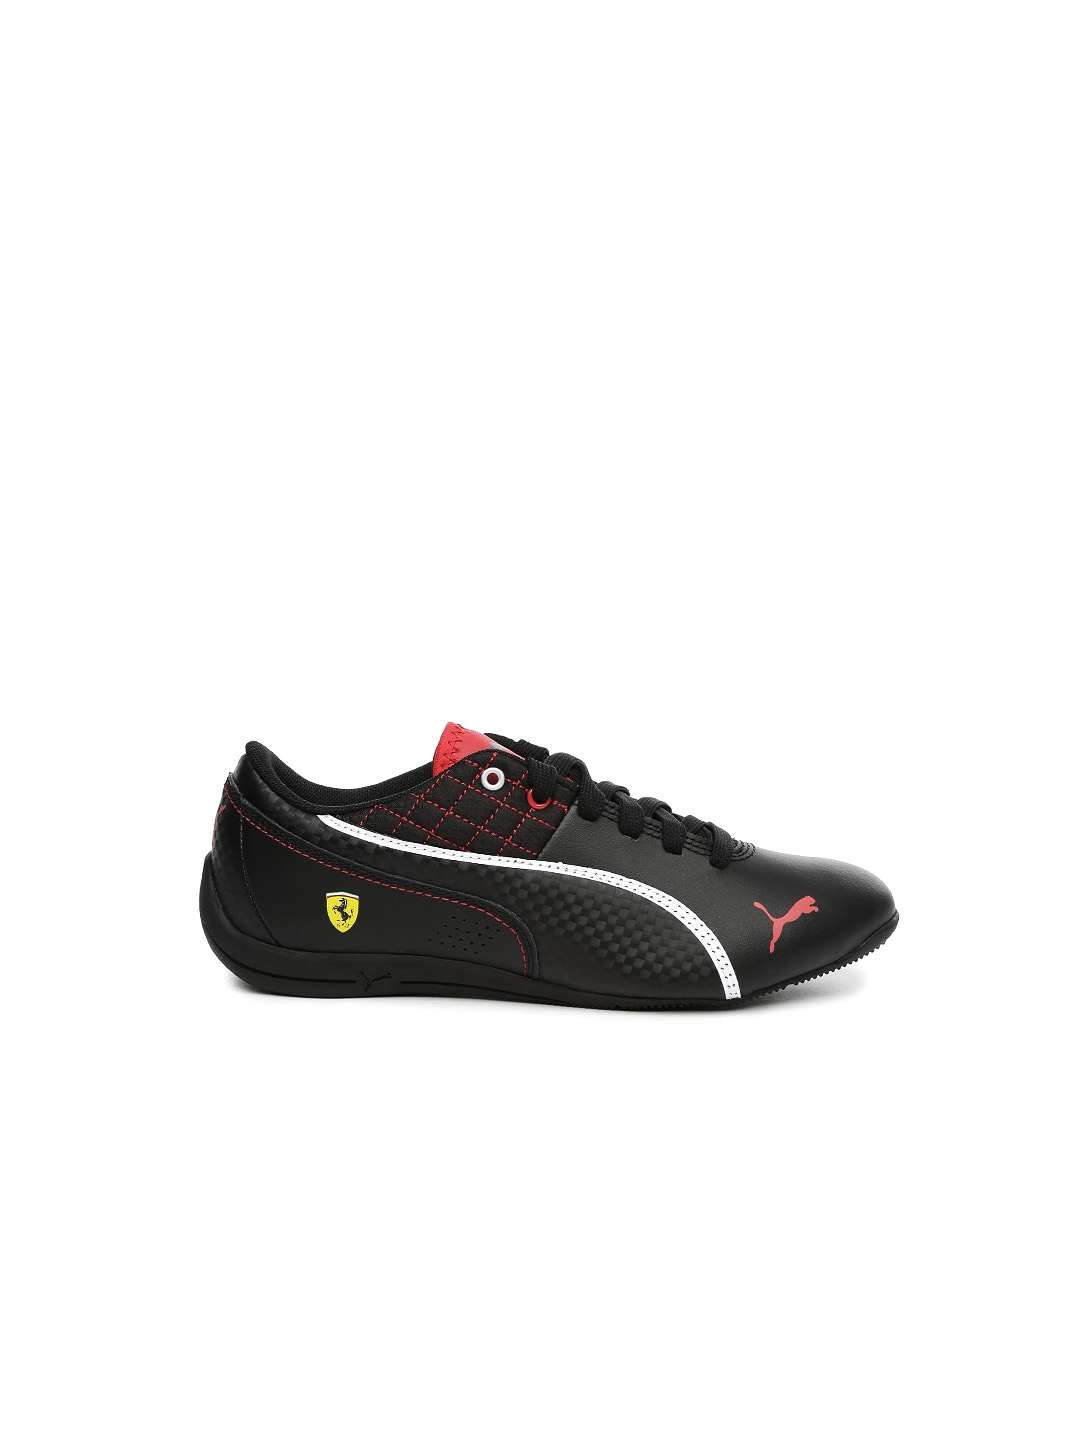 Puma Casual Shoes Myntra